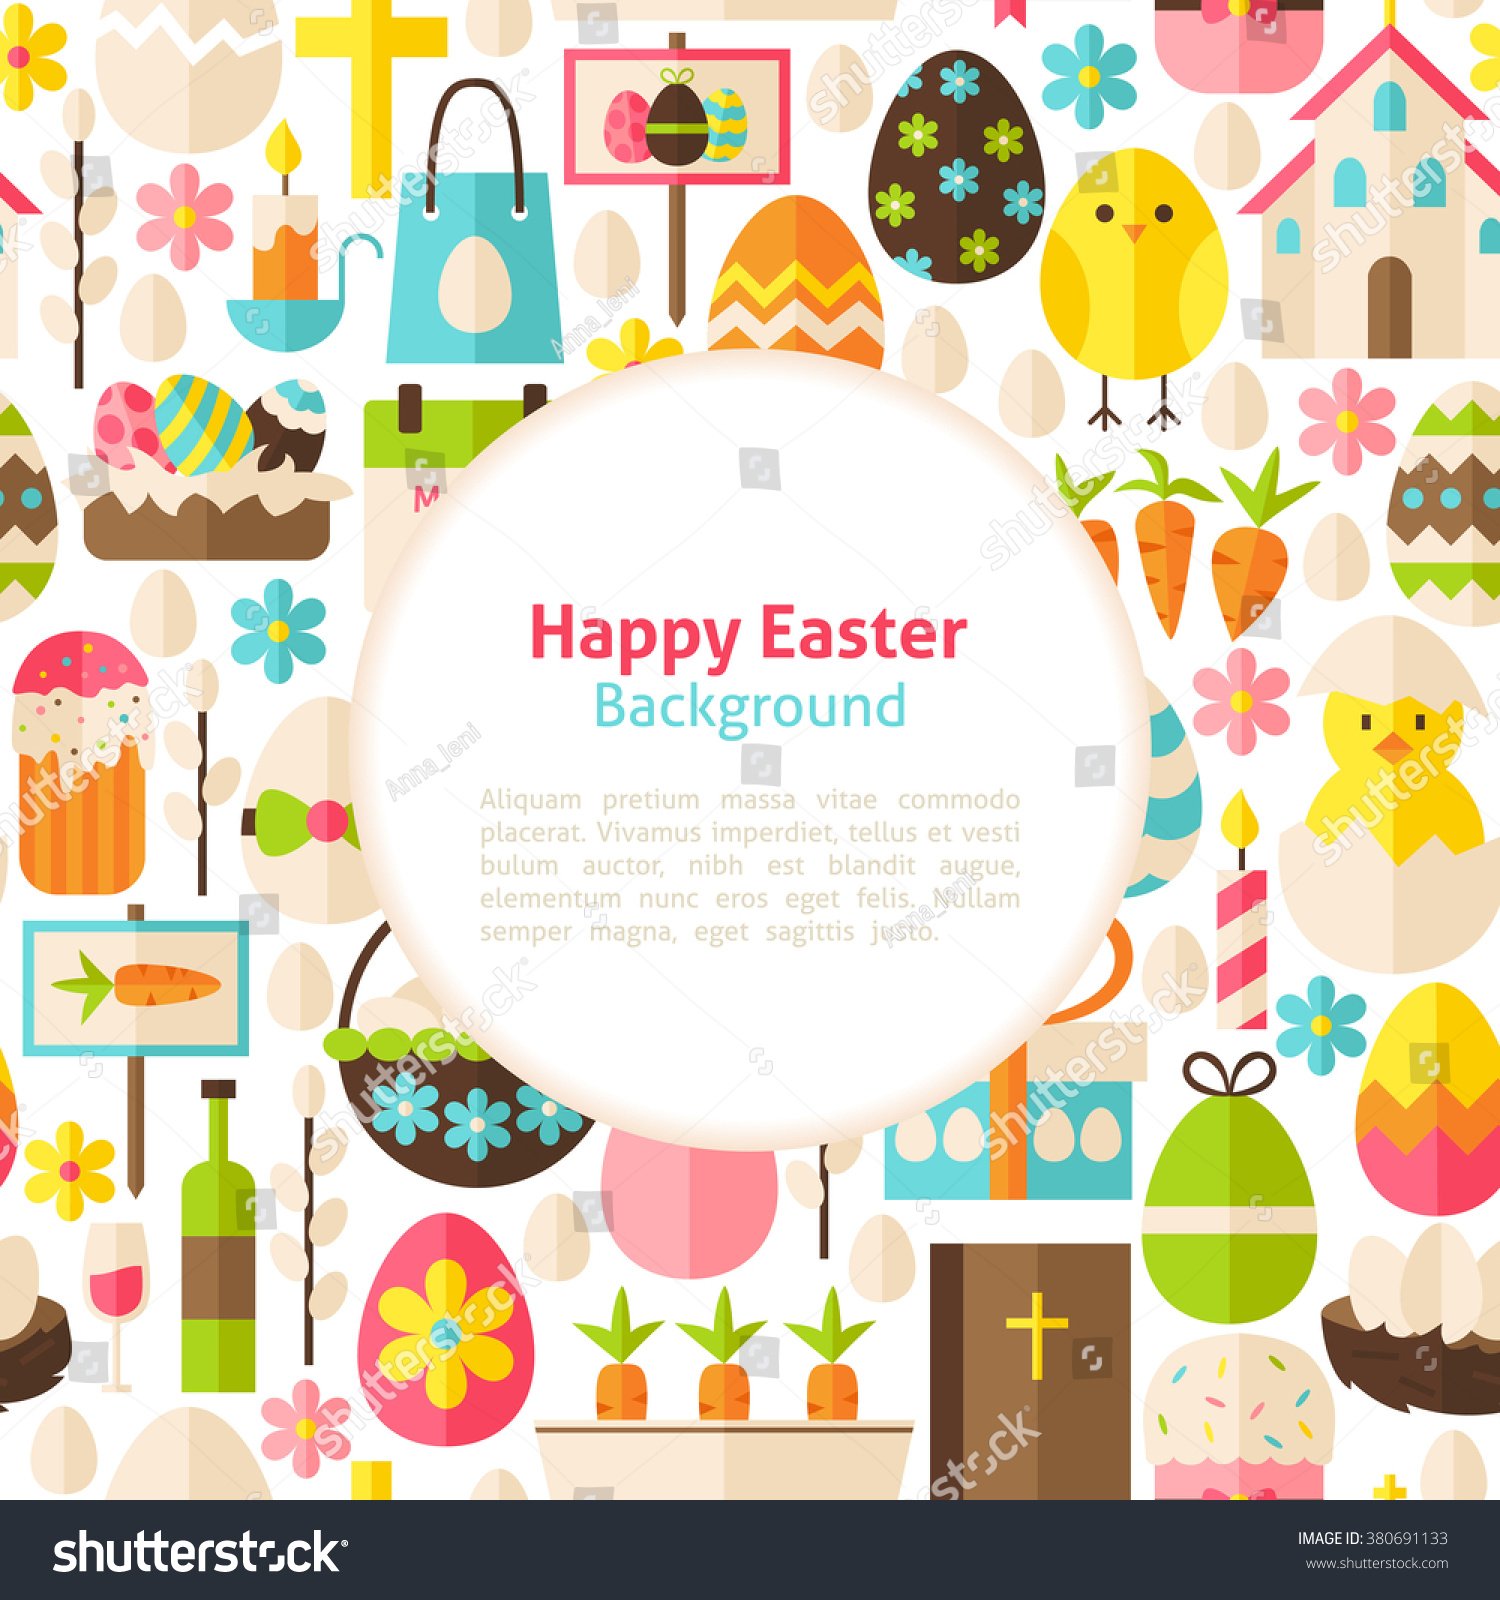 happy easter background flat style vector illustration for spring flat style vector illustration for spring religious holiday promotion template colorful